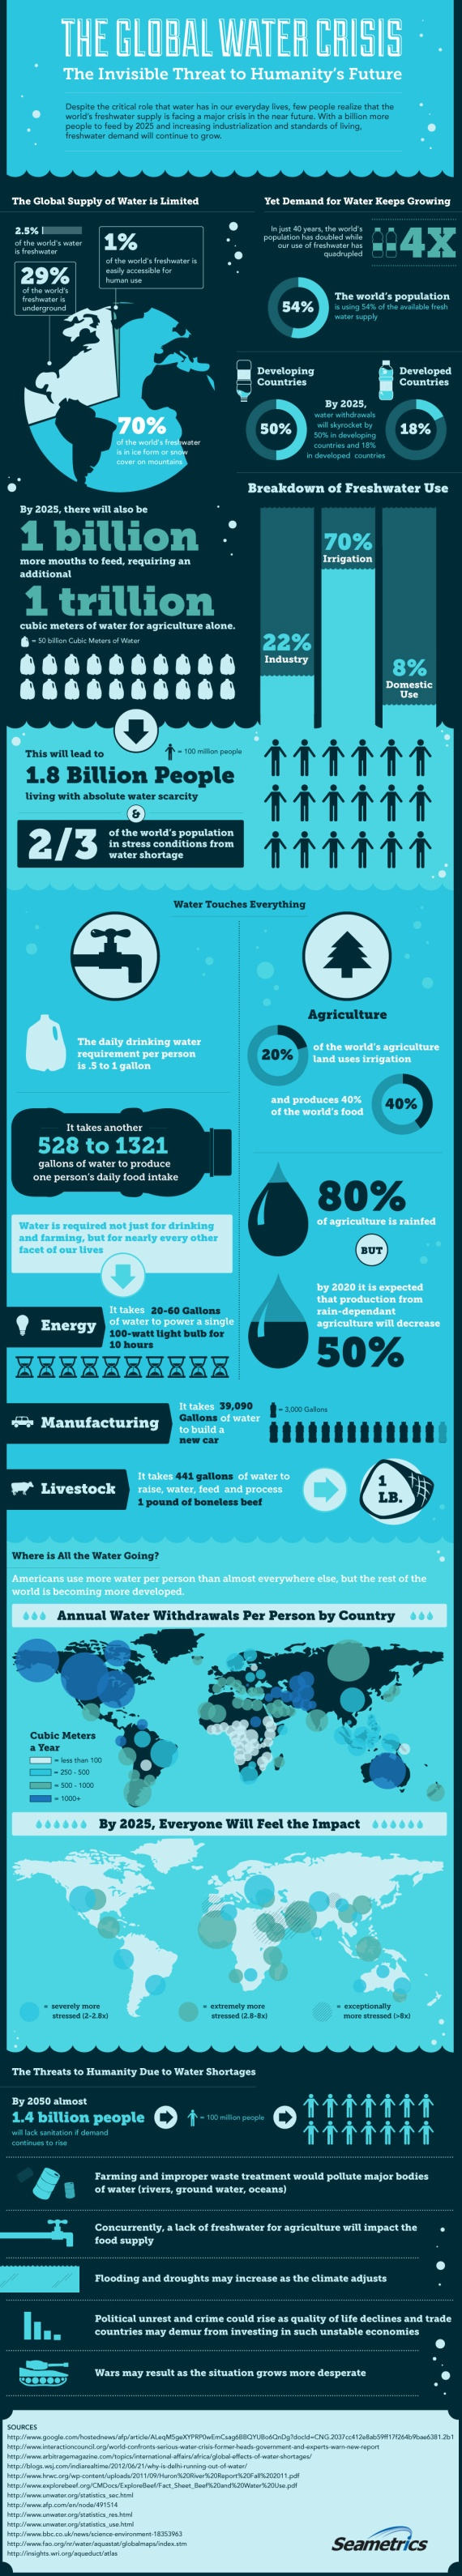 Seametrics-global-water-crisis